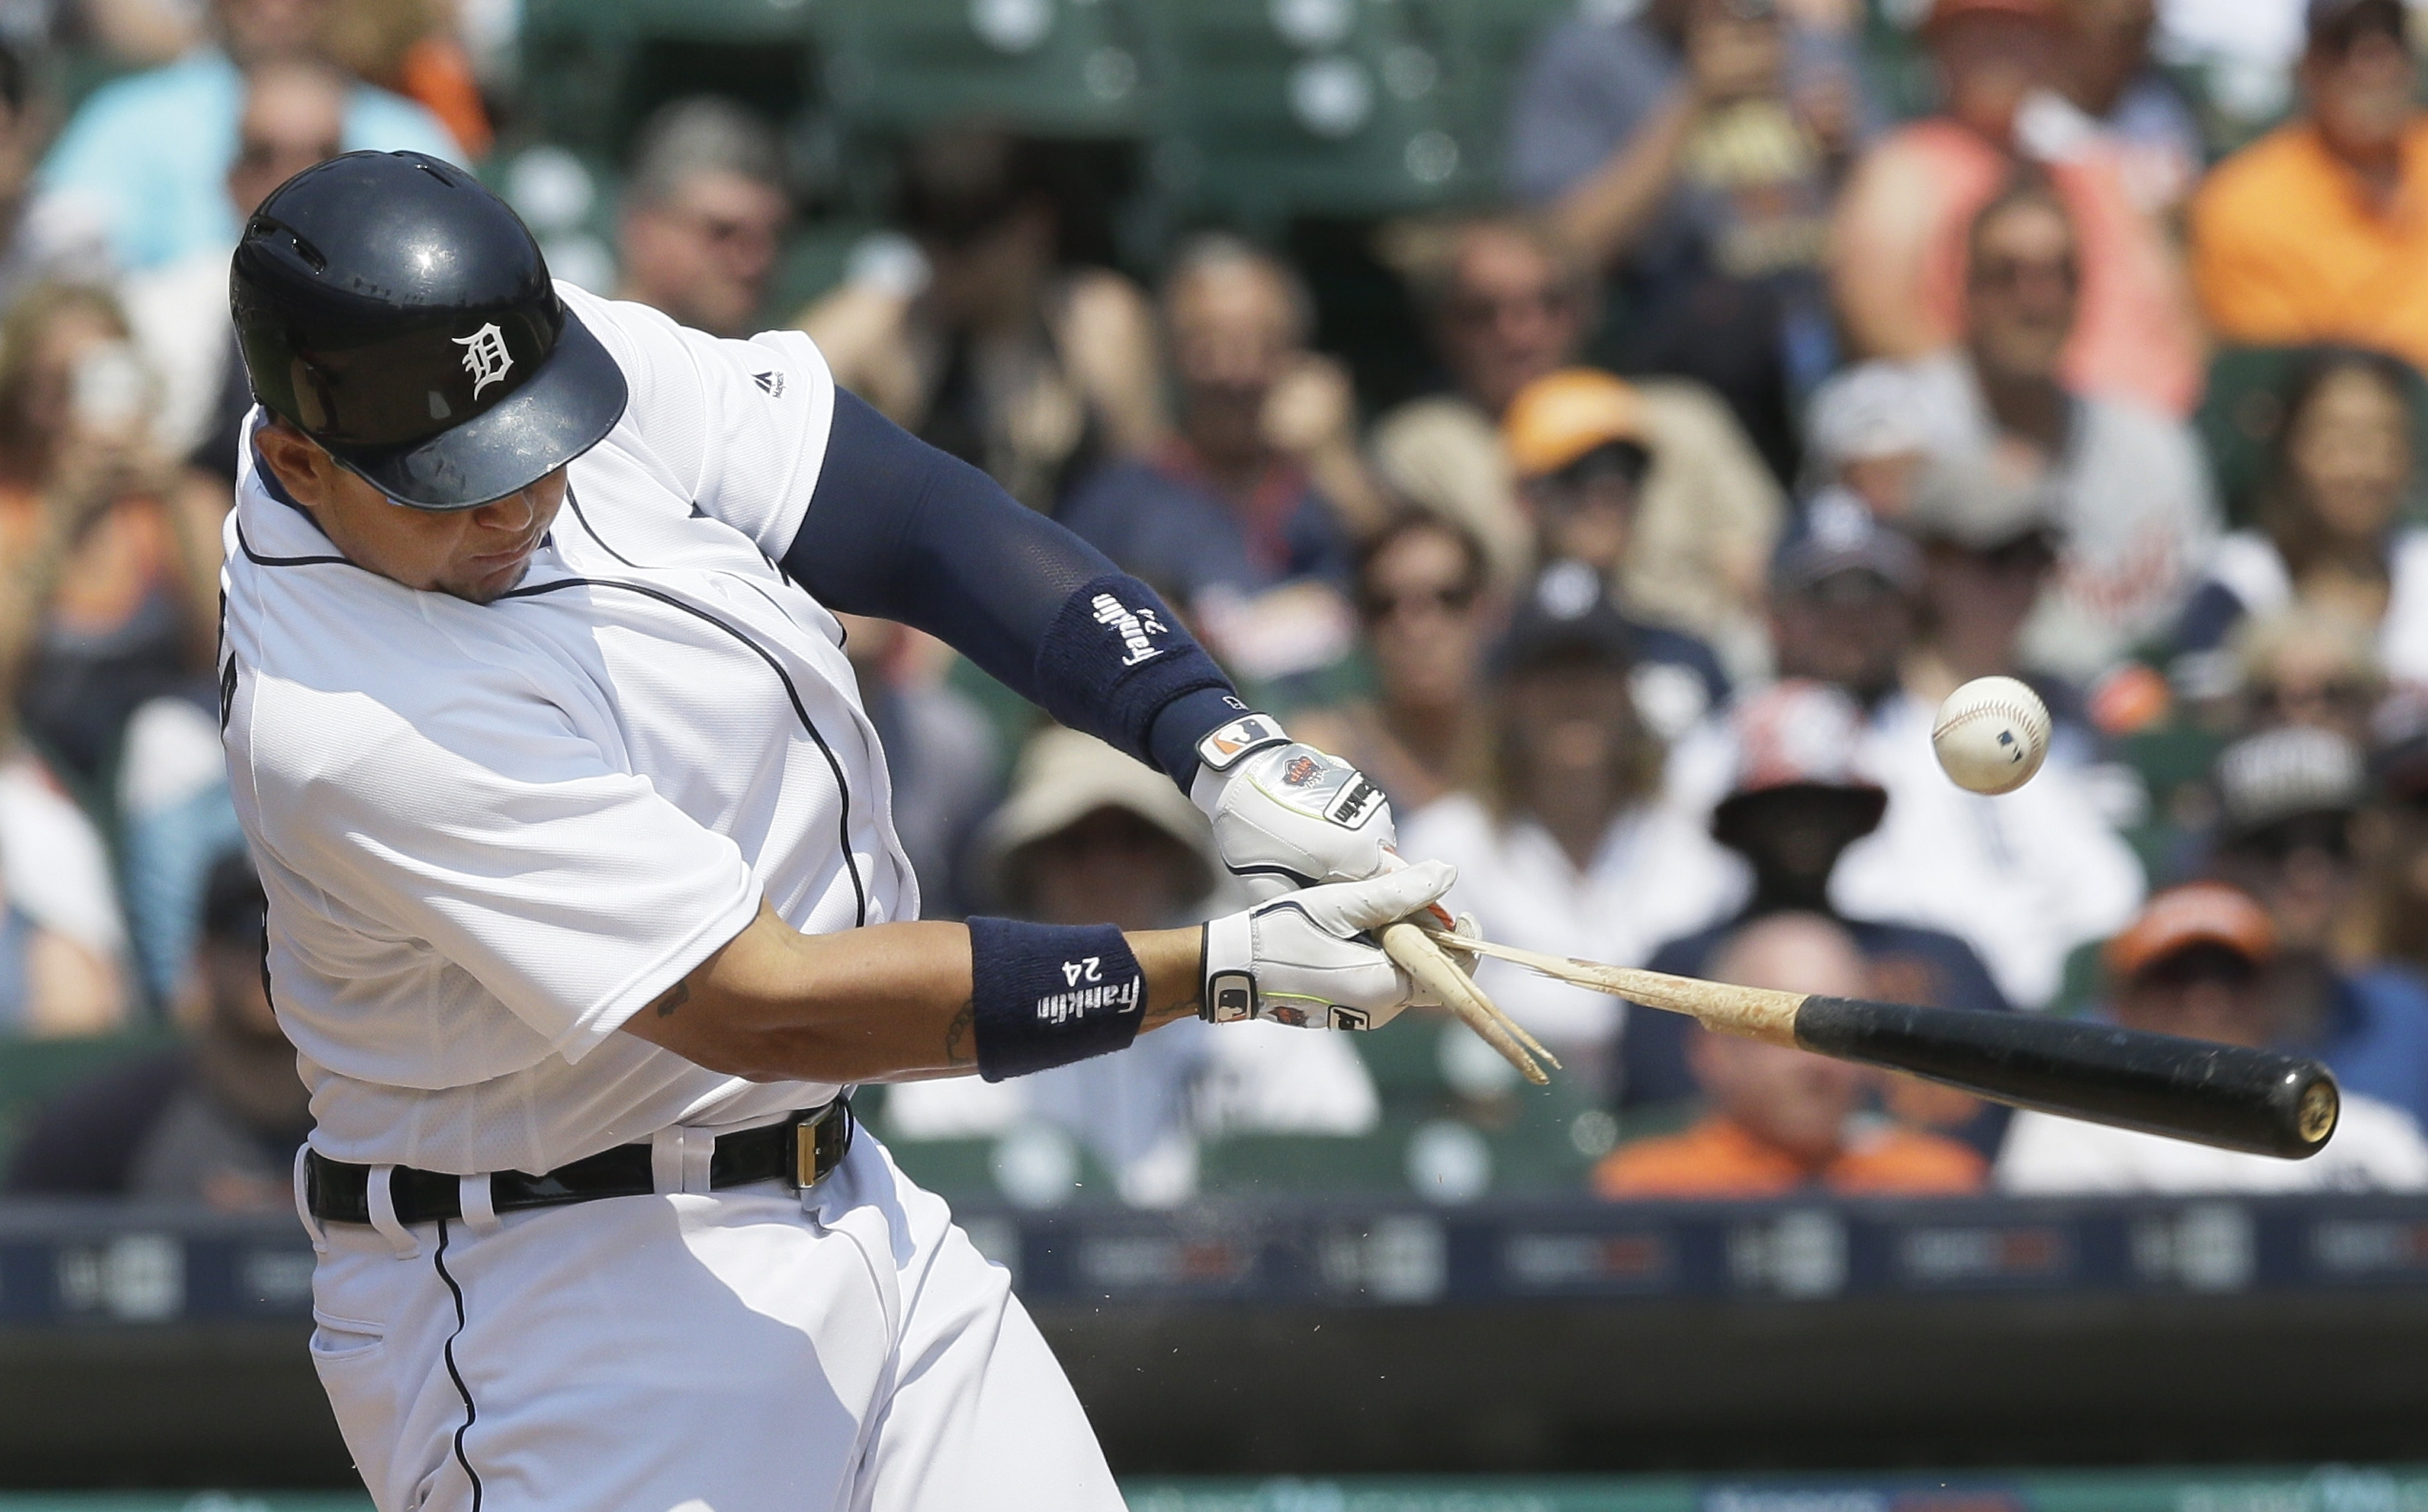 Detroit Tigers' Miguel Cabrera breaks his bat as he pops up during the fifth inning of a baseball game against the Philadelphia Phillies, Wednesday, May 25, 2016, in Detroit. (AP Photo/Carlos Osorio)